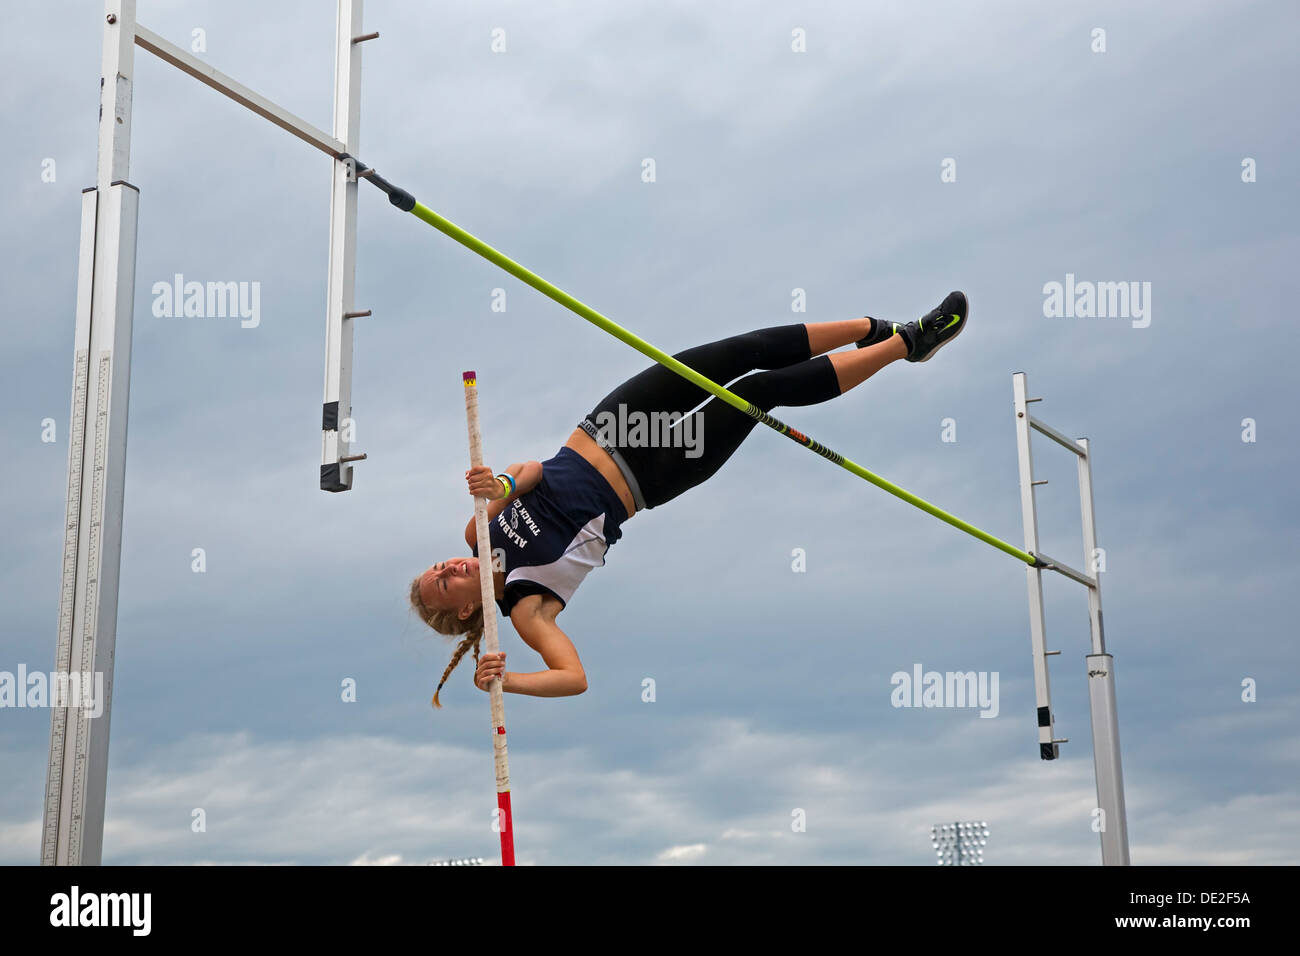 Ypsilanti, Michigan - Women's pole vault competition during the track and field events at the AAU Junior Olympic Games. - Stock Image